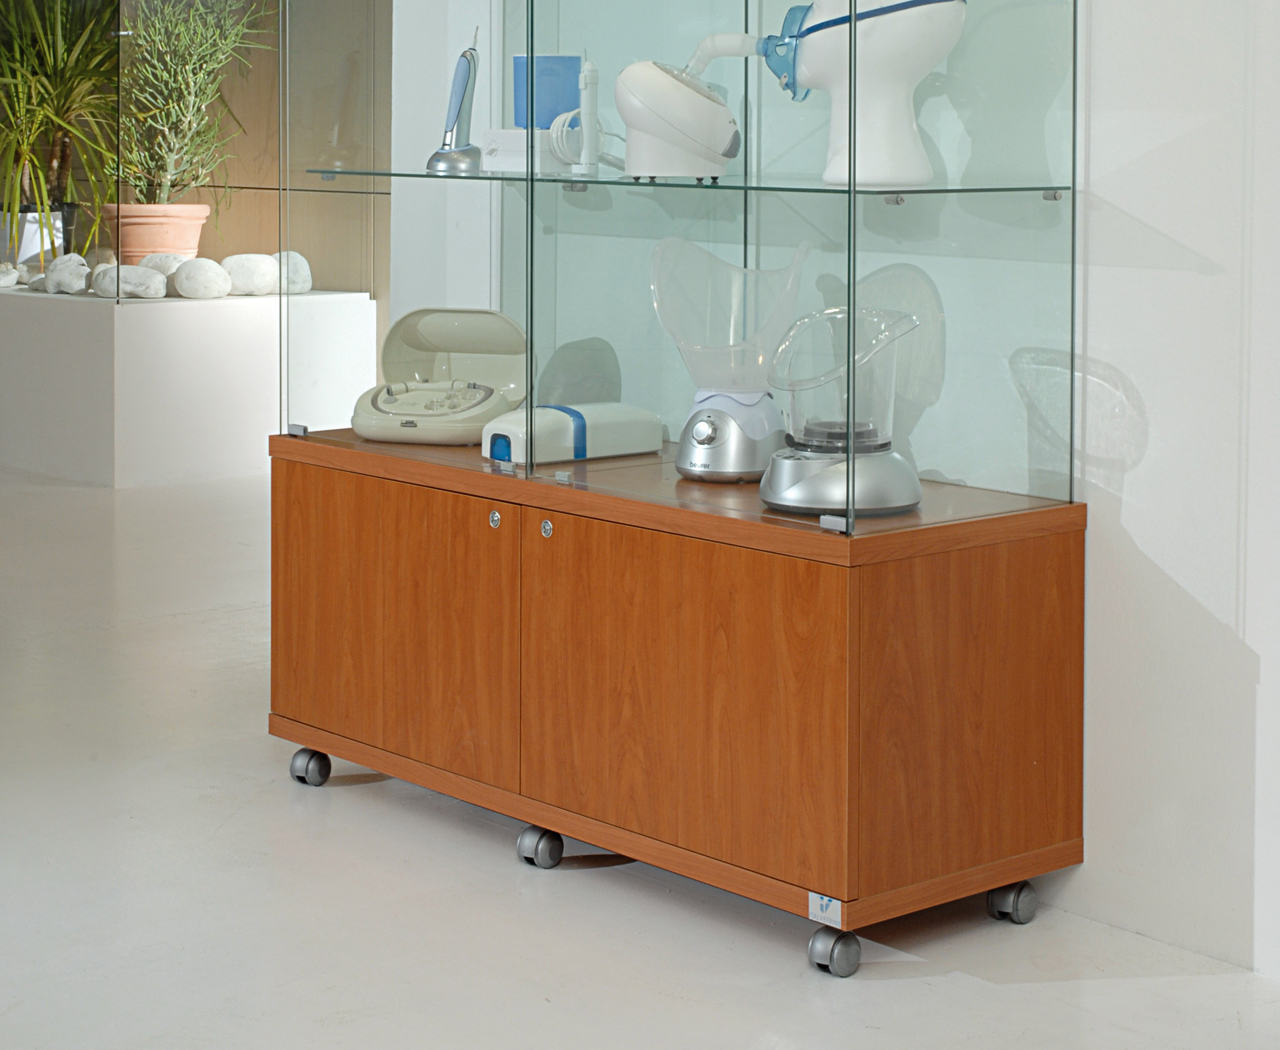 View Display Cabinets on Castors category